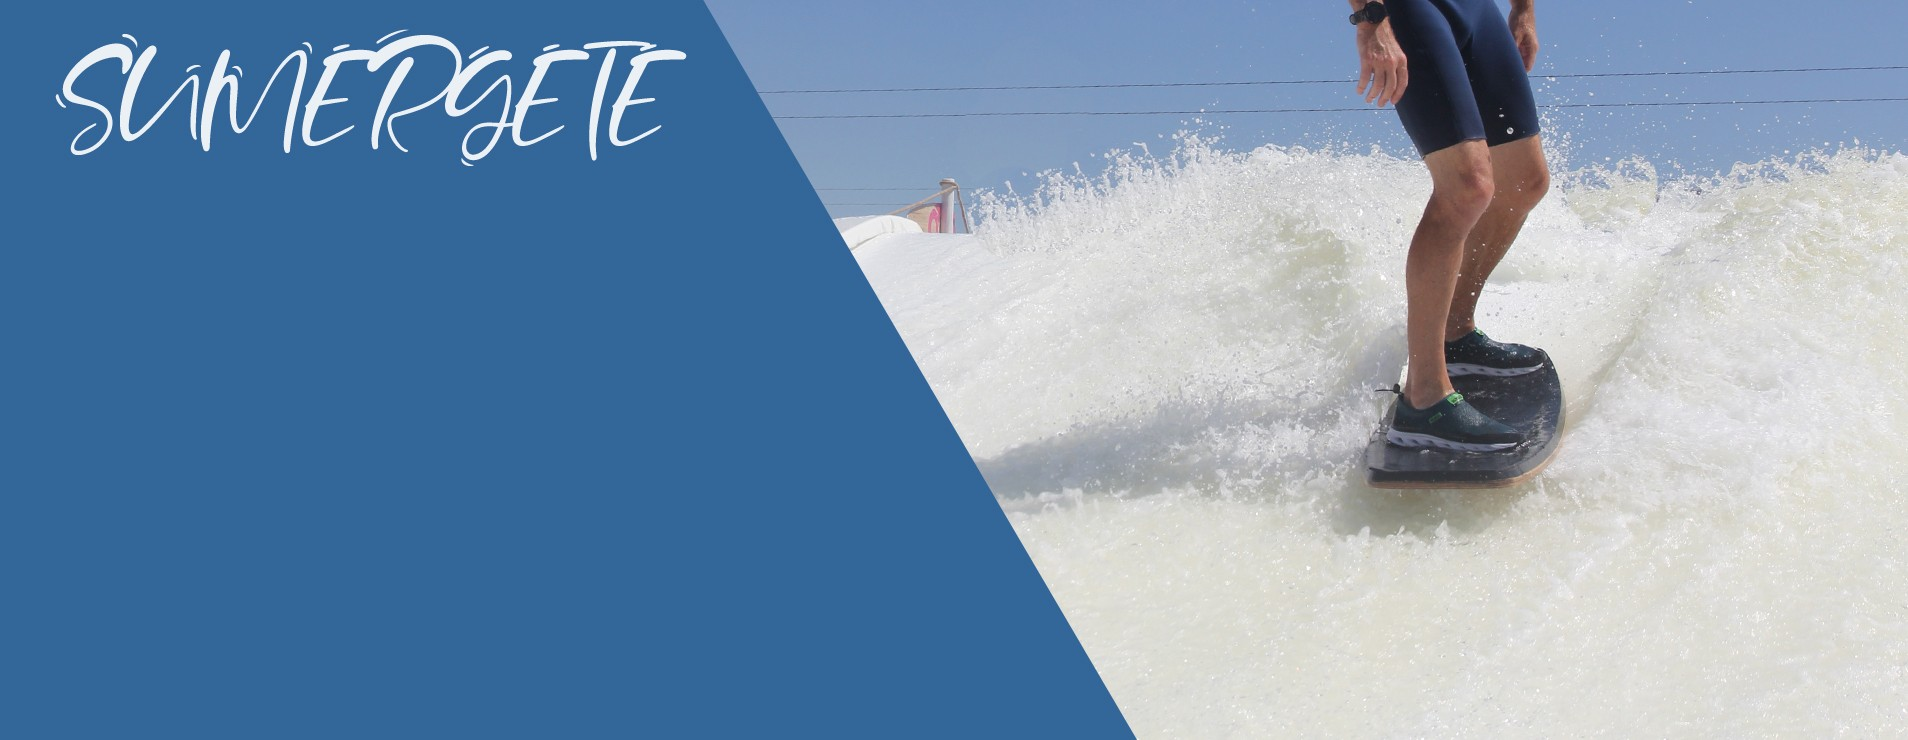 STATIC WAVE SURFING